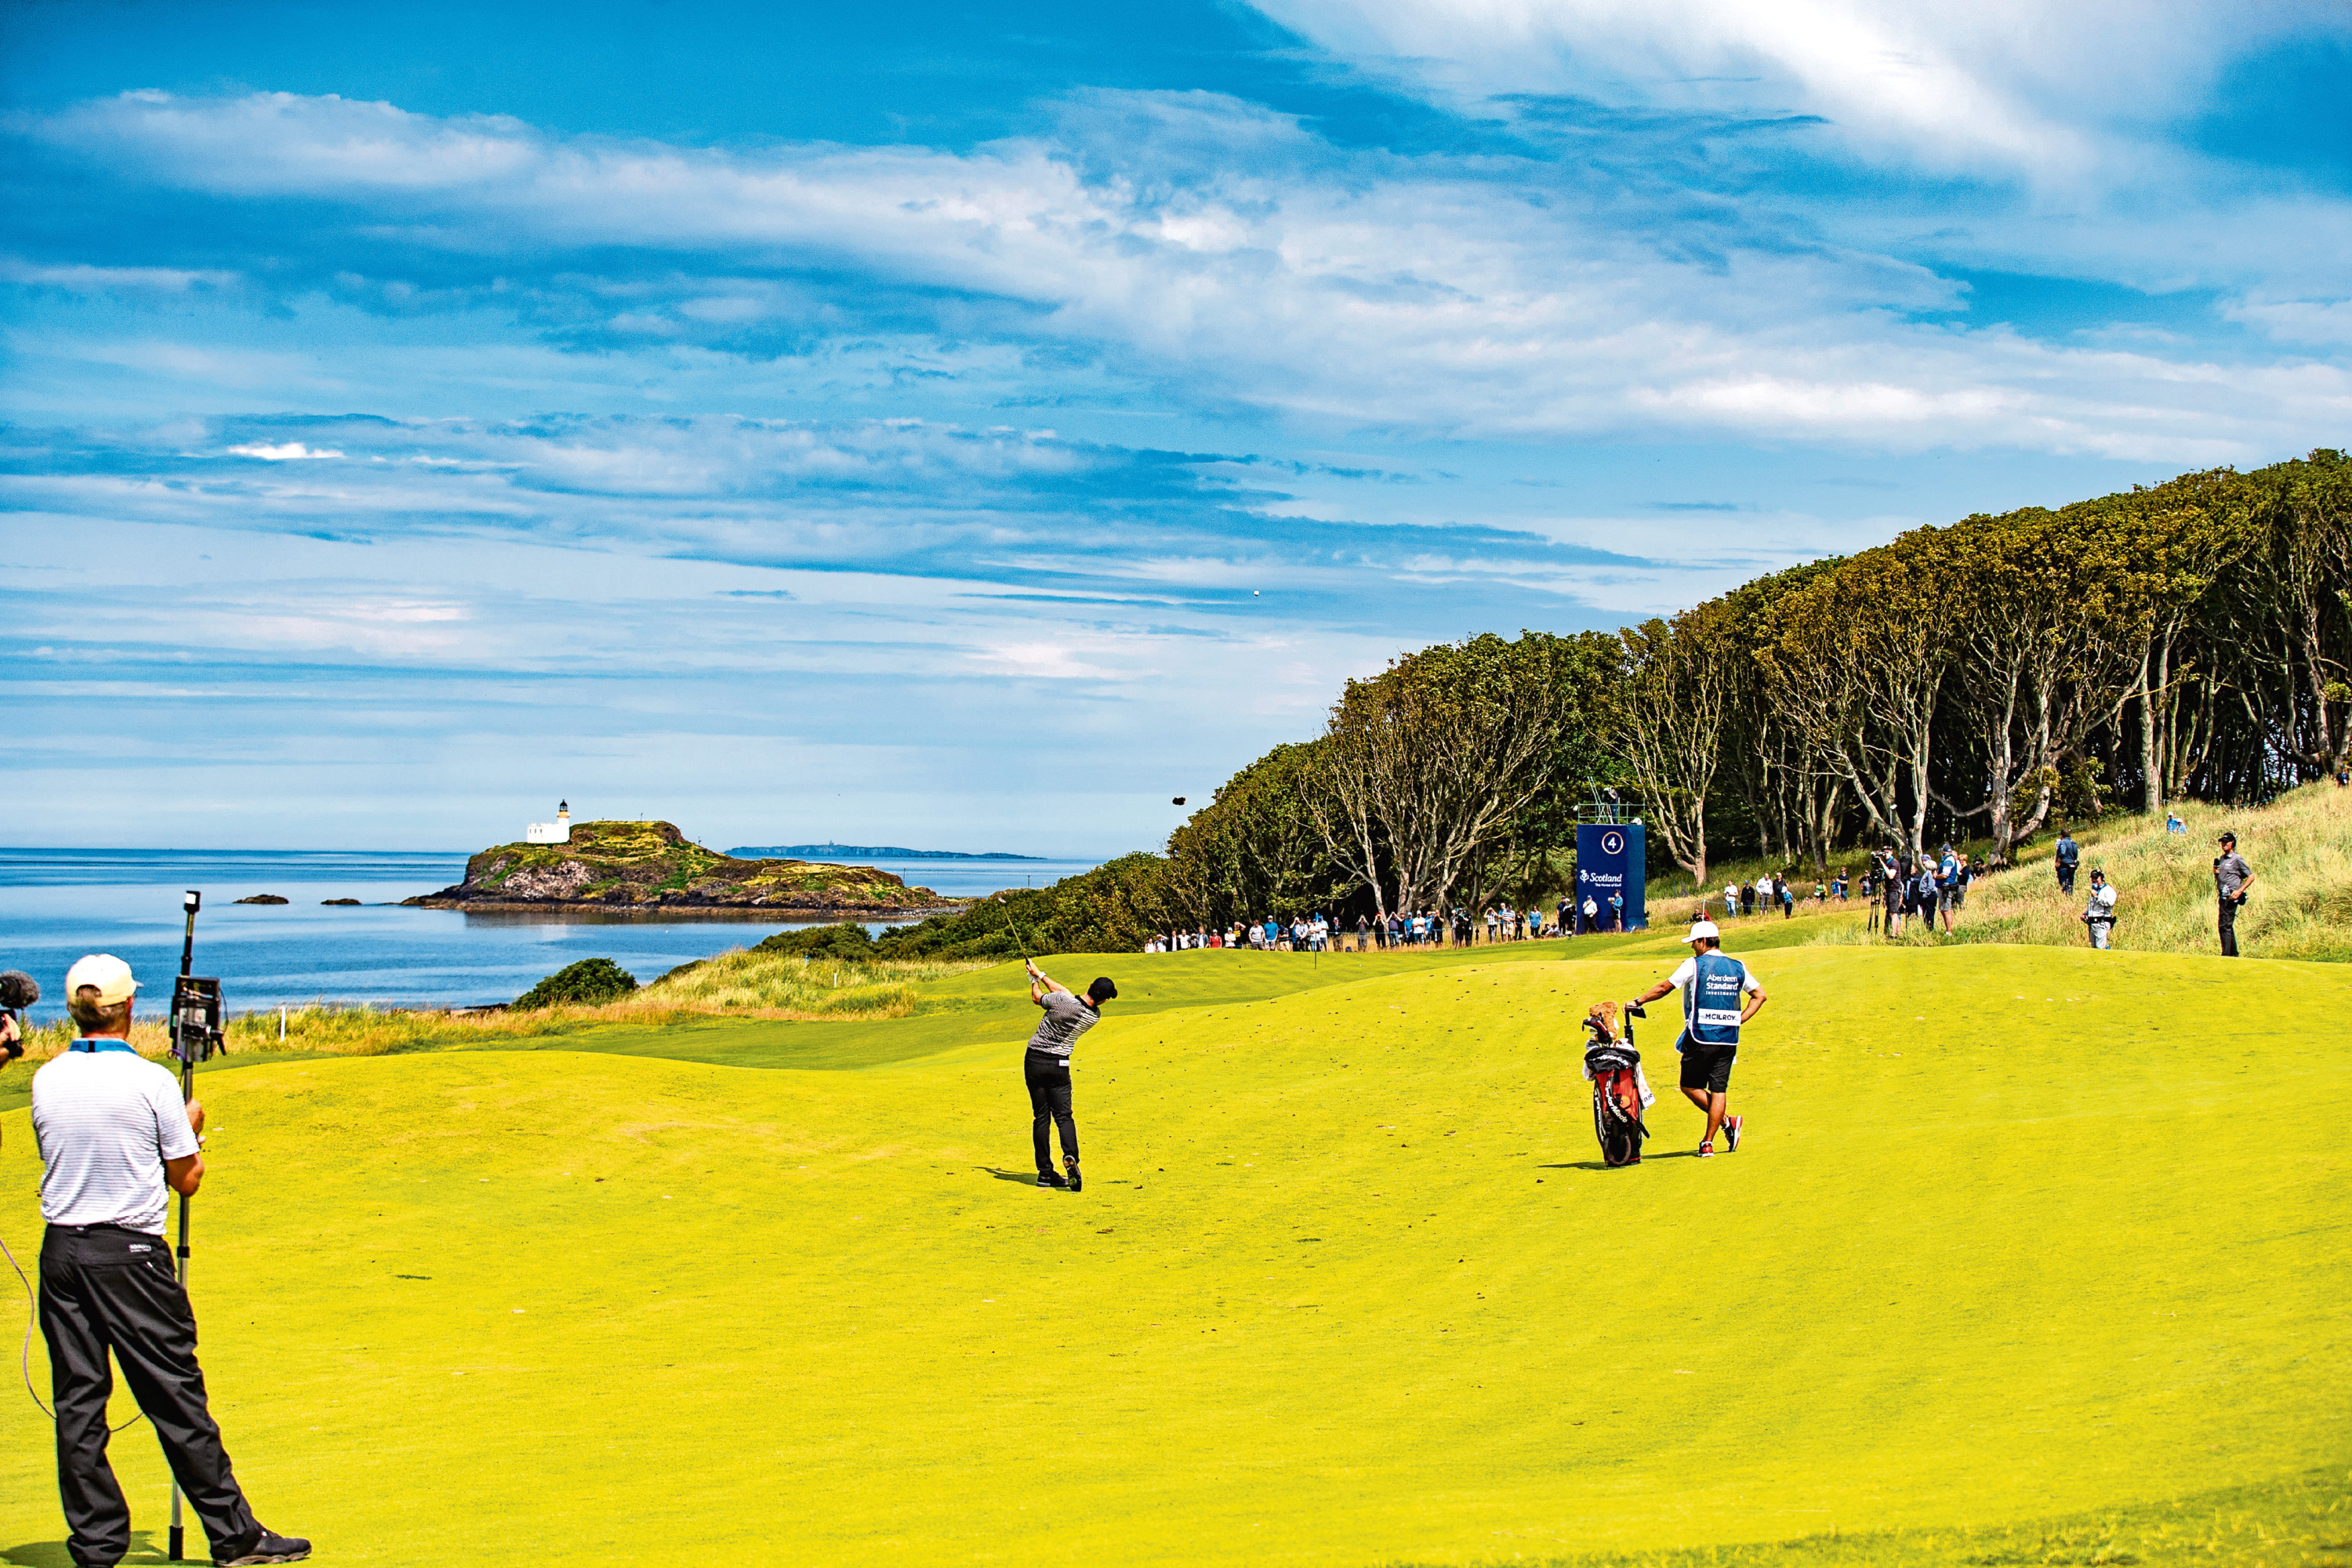 The Aberdeen Standard Investments Scottish Open was due to be held at Renaissance for a second successive year.